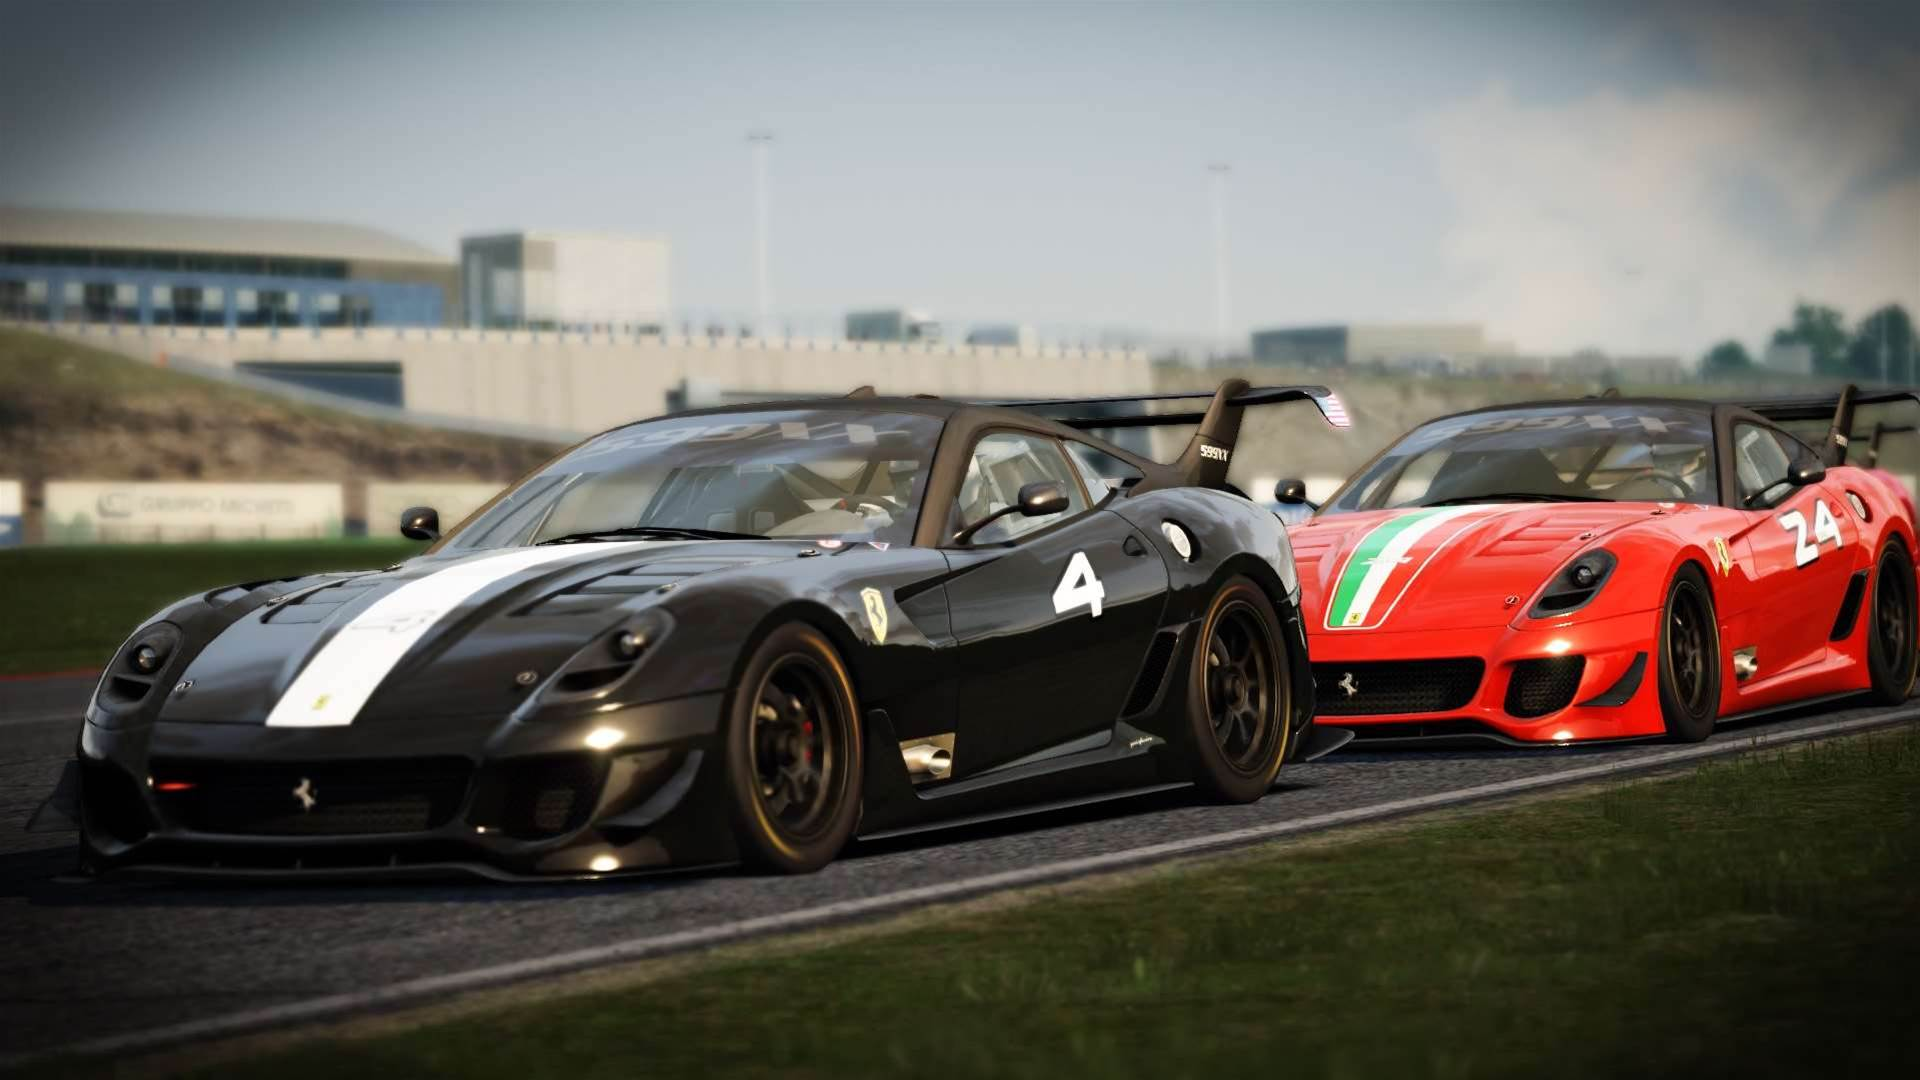 Assetto Corsa launches on console this month... but can anyone pick it up and play?